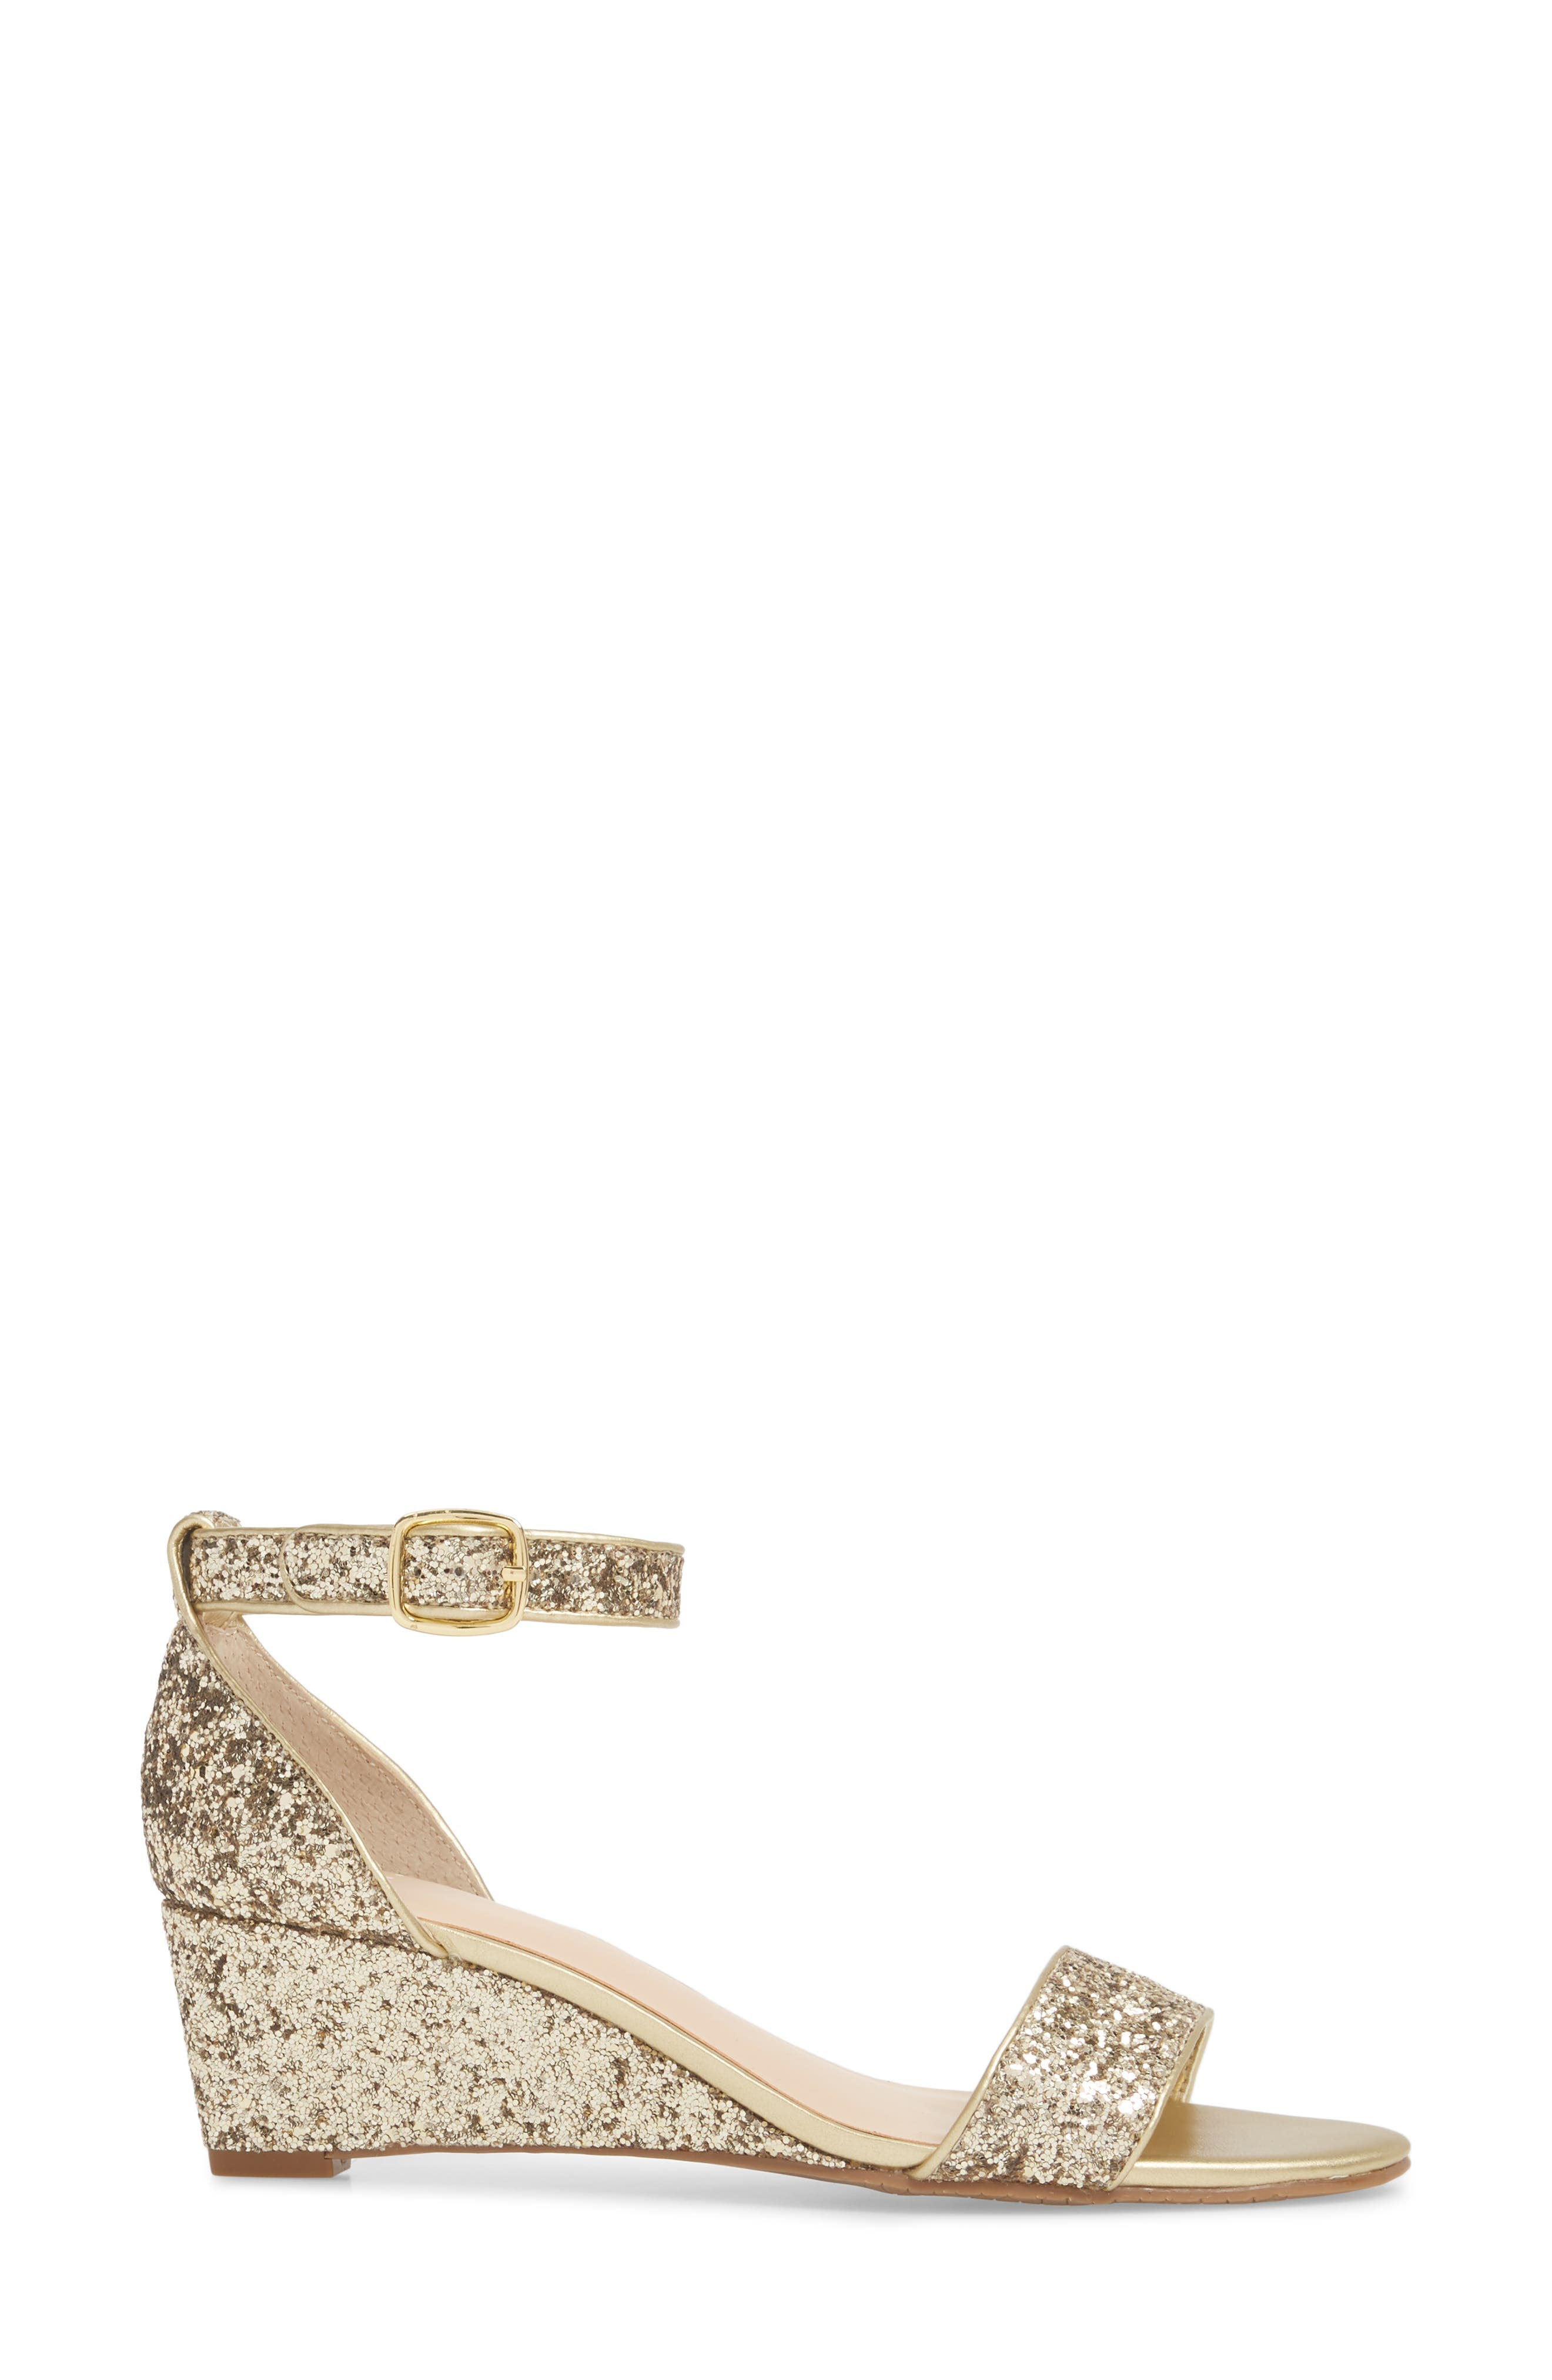 'Roxie' Wedge Sandal,                             Alternate thumbnail 3, color,                             GOLD GLITTER